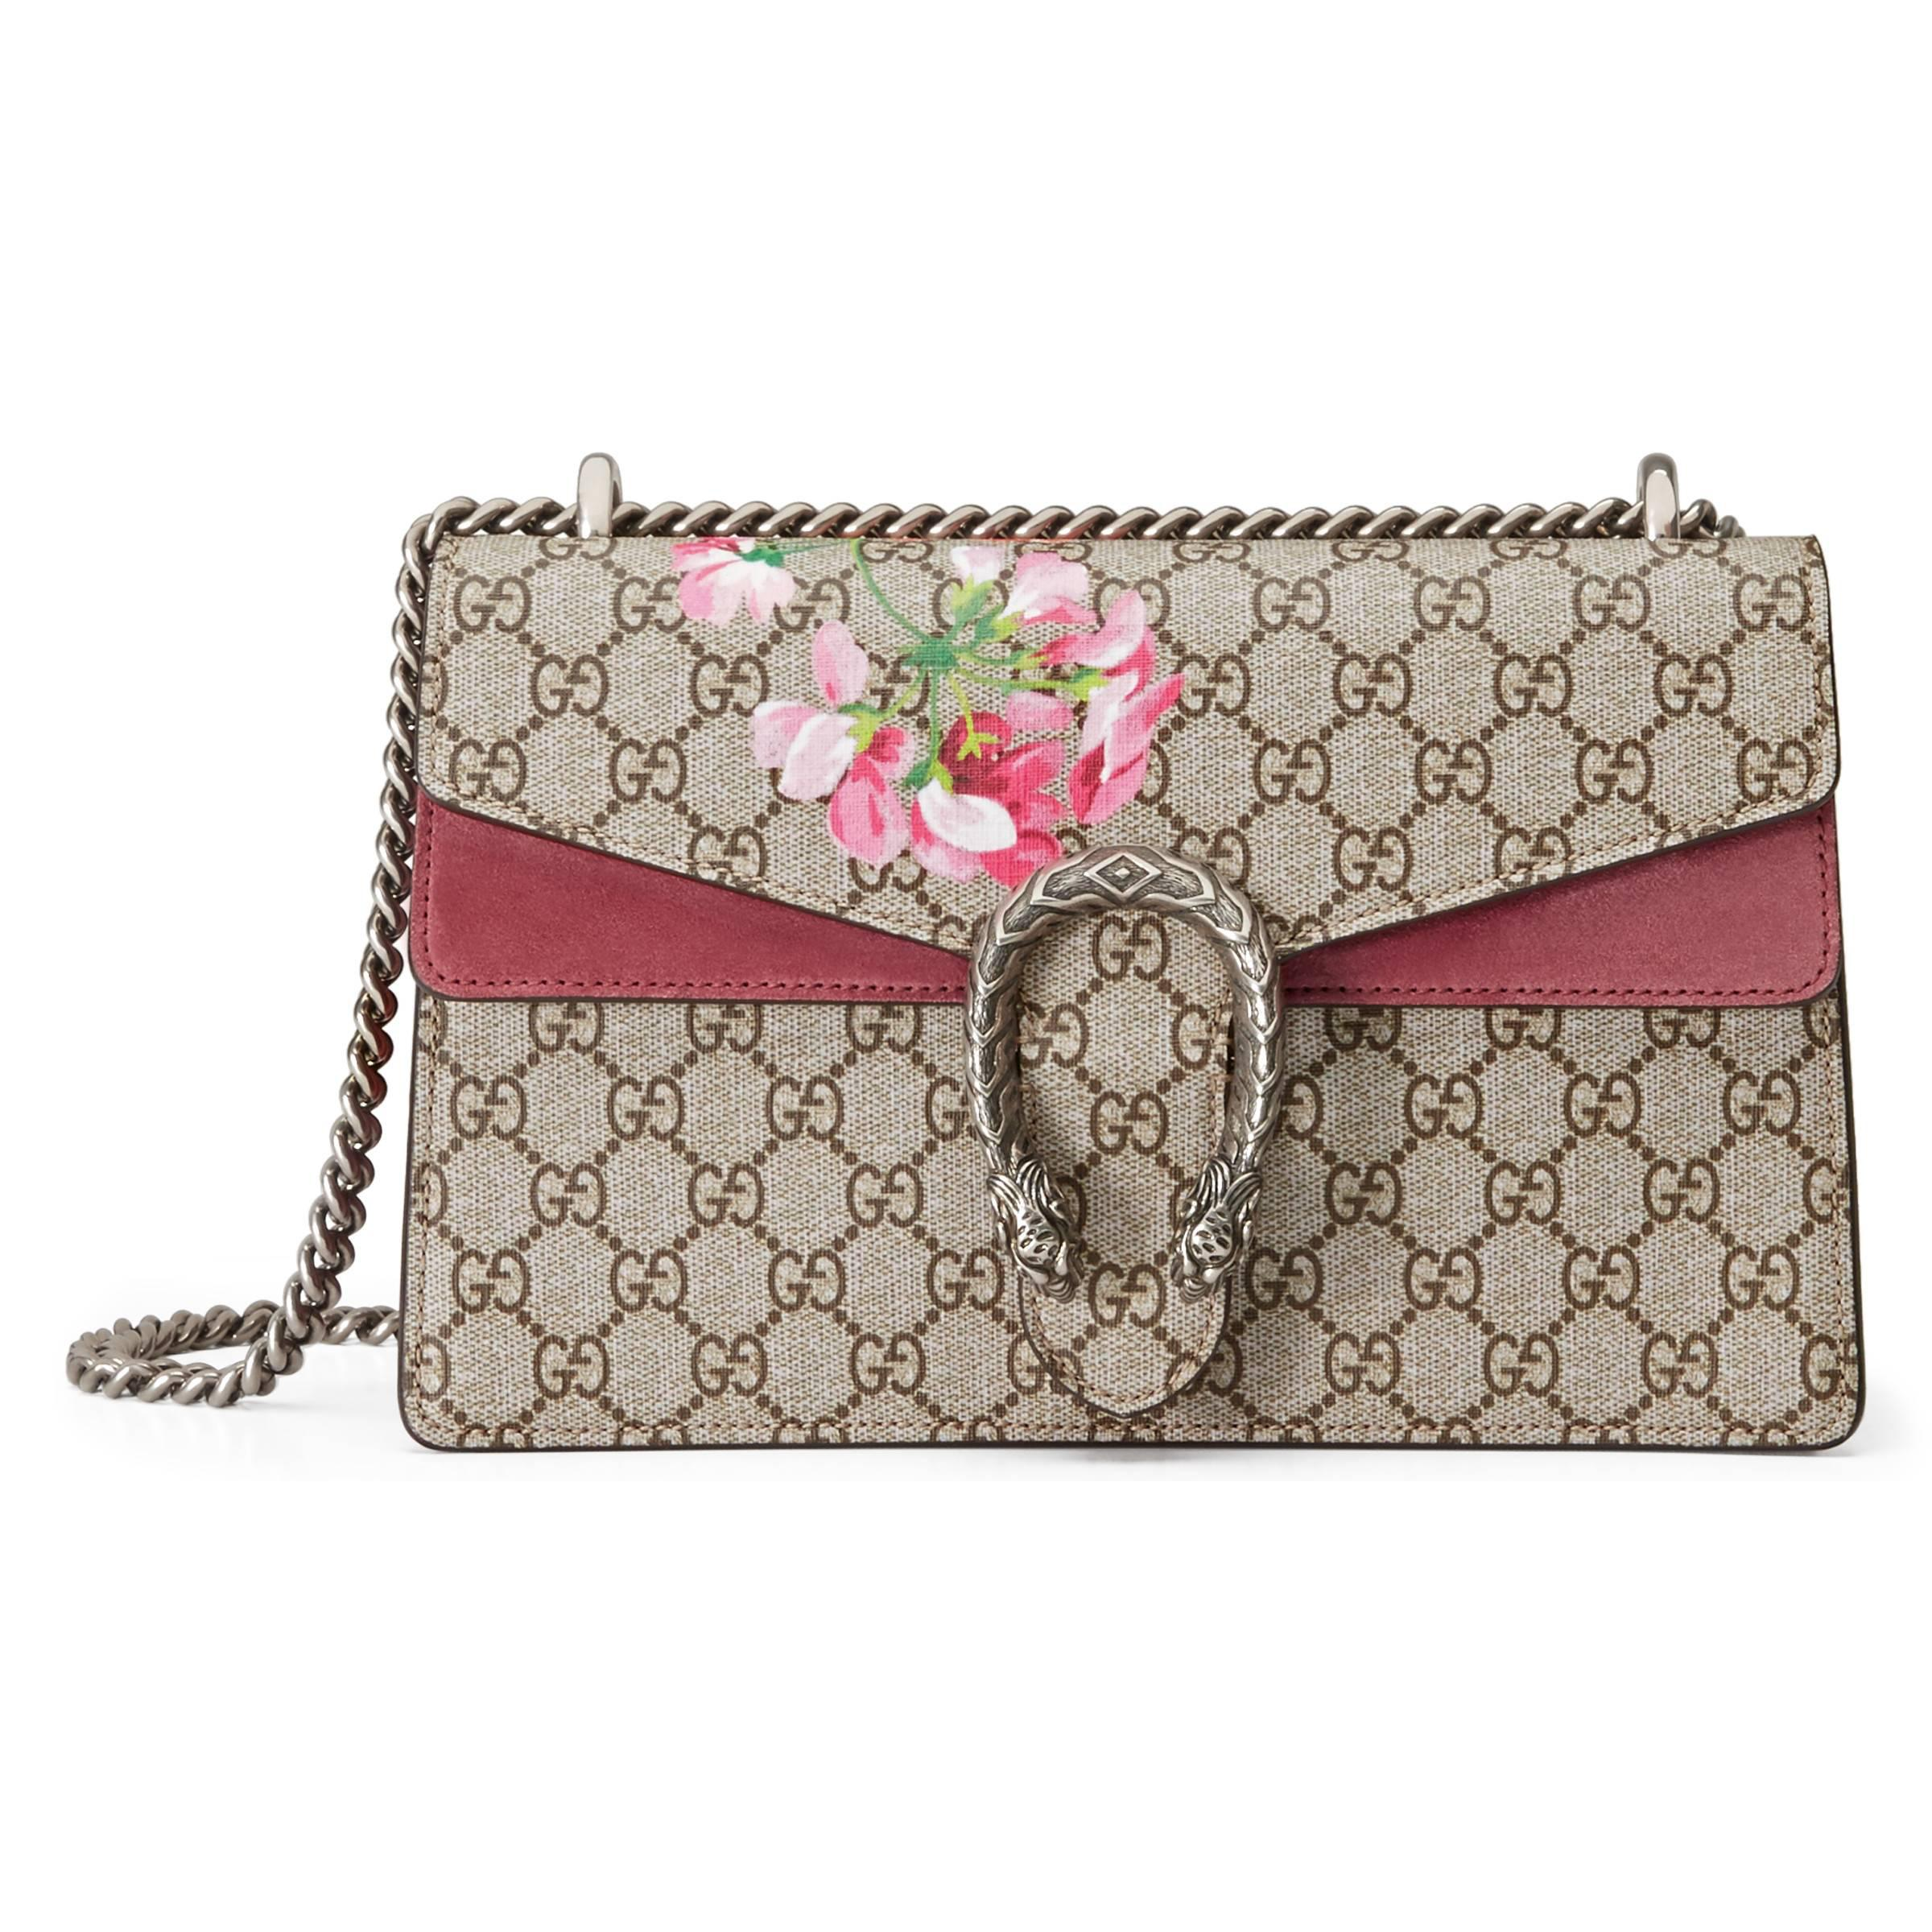 23627833b345 Gucci Dionysus Small GG Blooms Shoulder Bag in Natural - Lyst